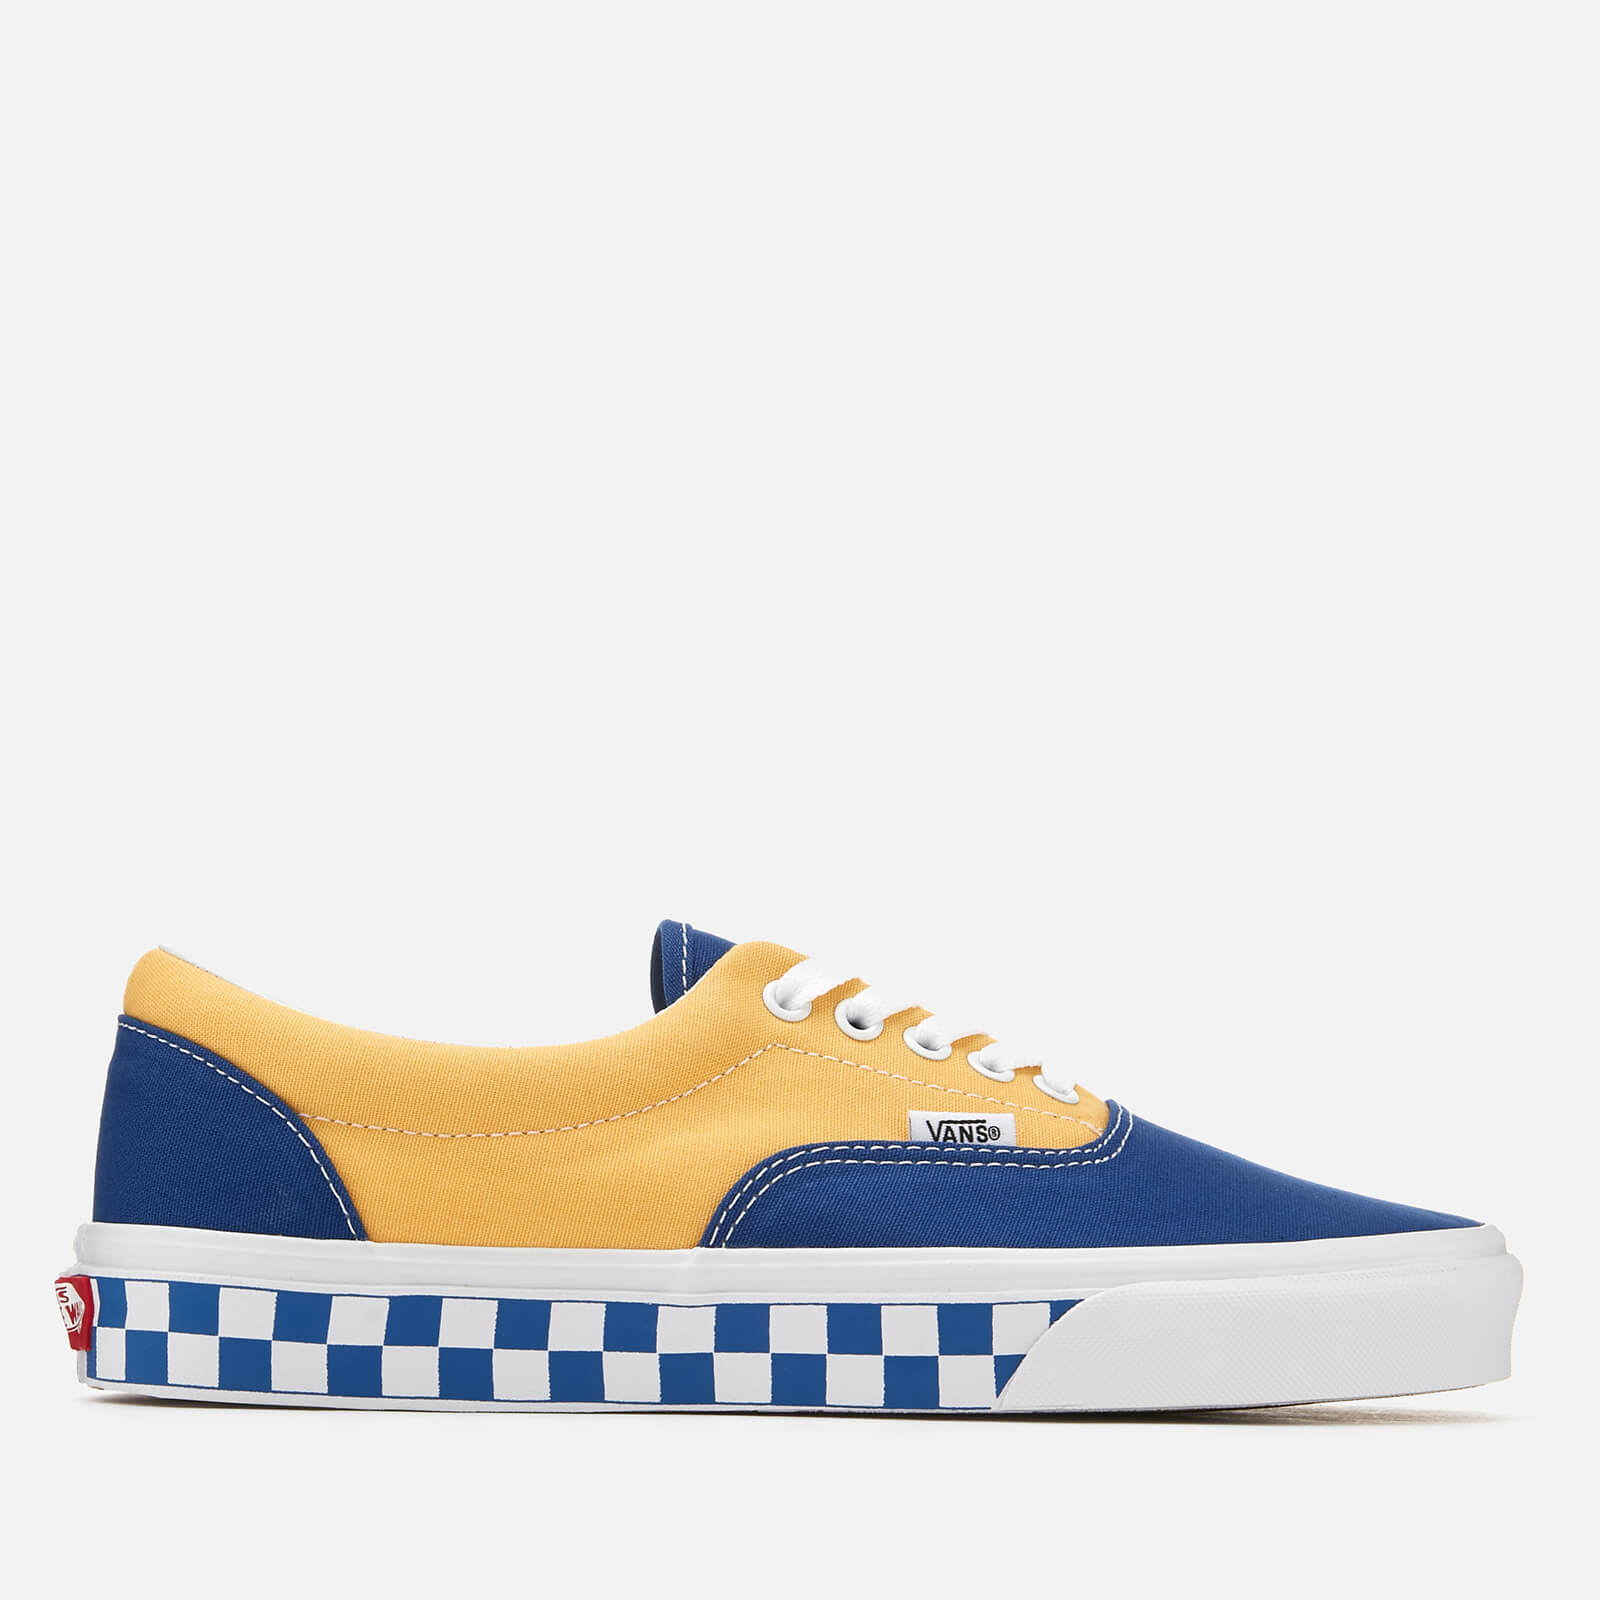 41b823751e Vans Men s Era BMX Checkerboard Trainers - True Blue Yellow Clothing ...